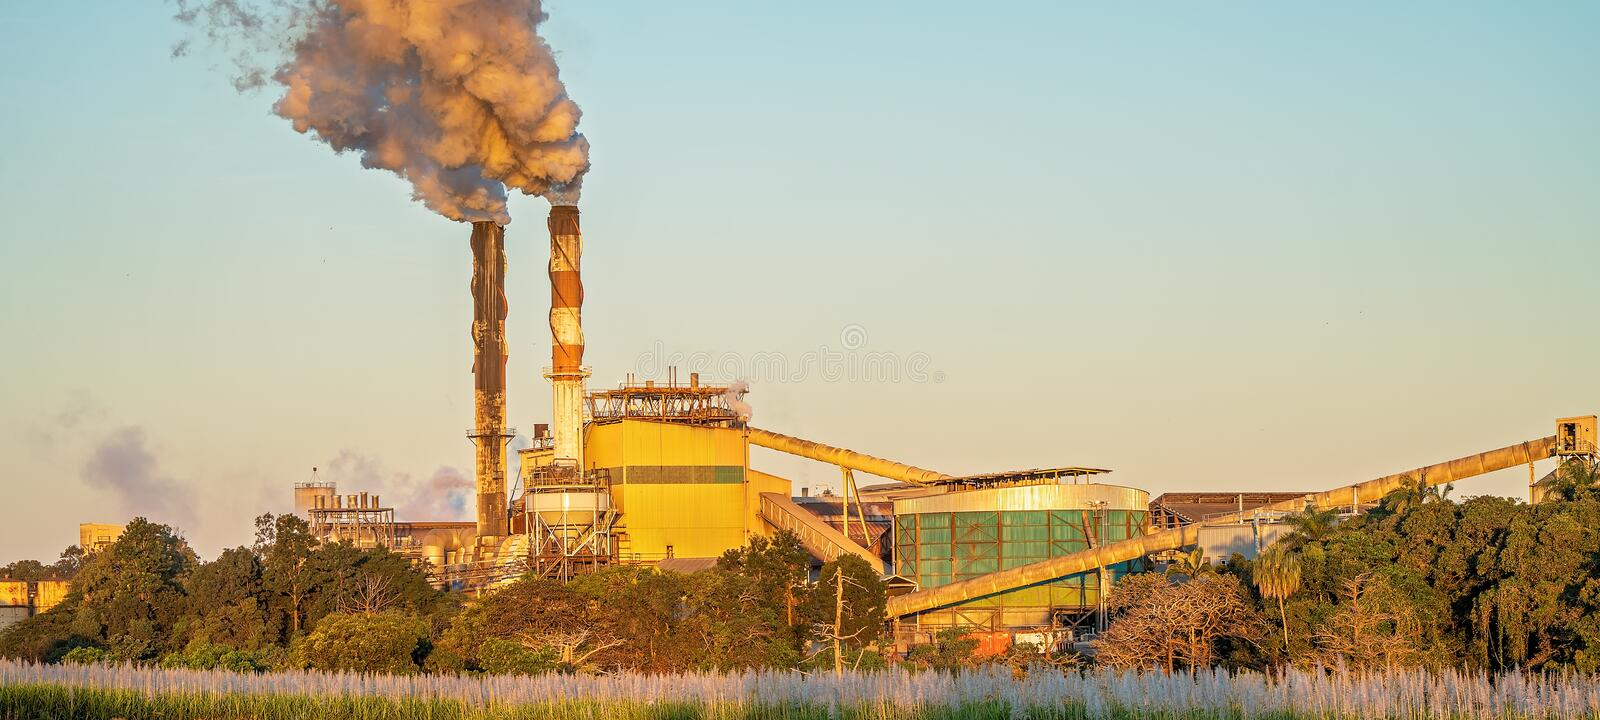 Sunset Over A Sugar Mill Refinery During Crushing Season royalty free stock images